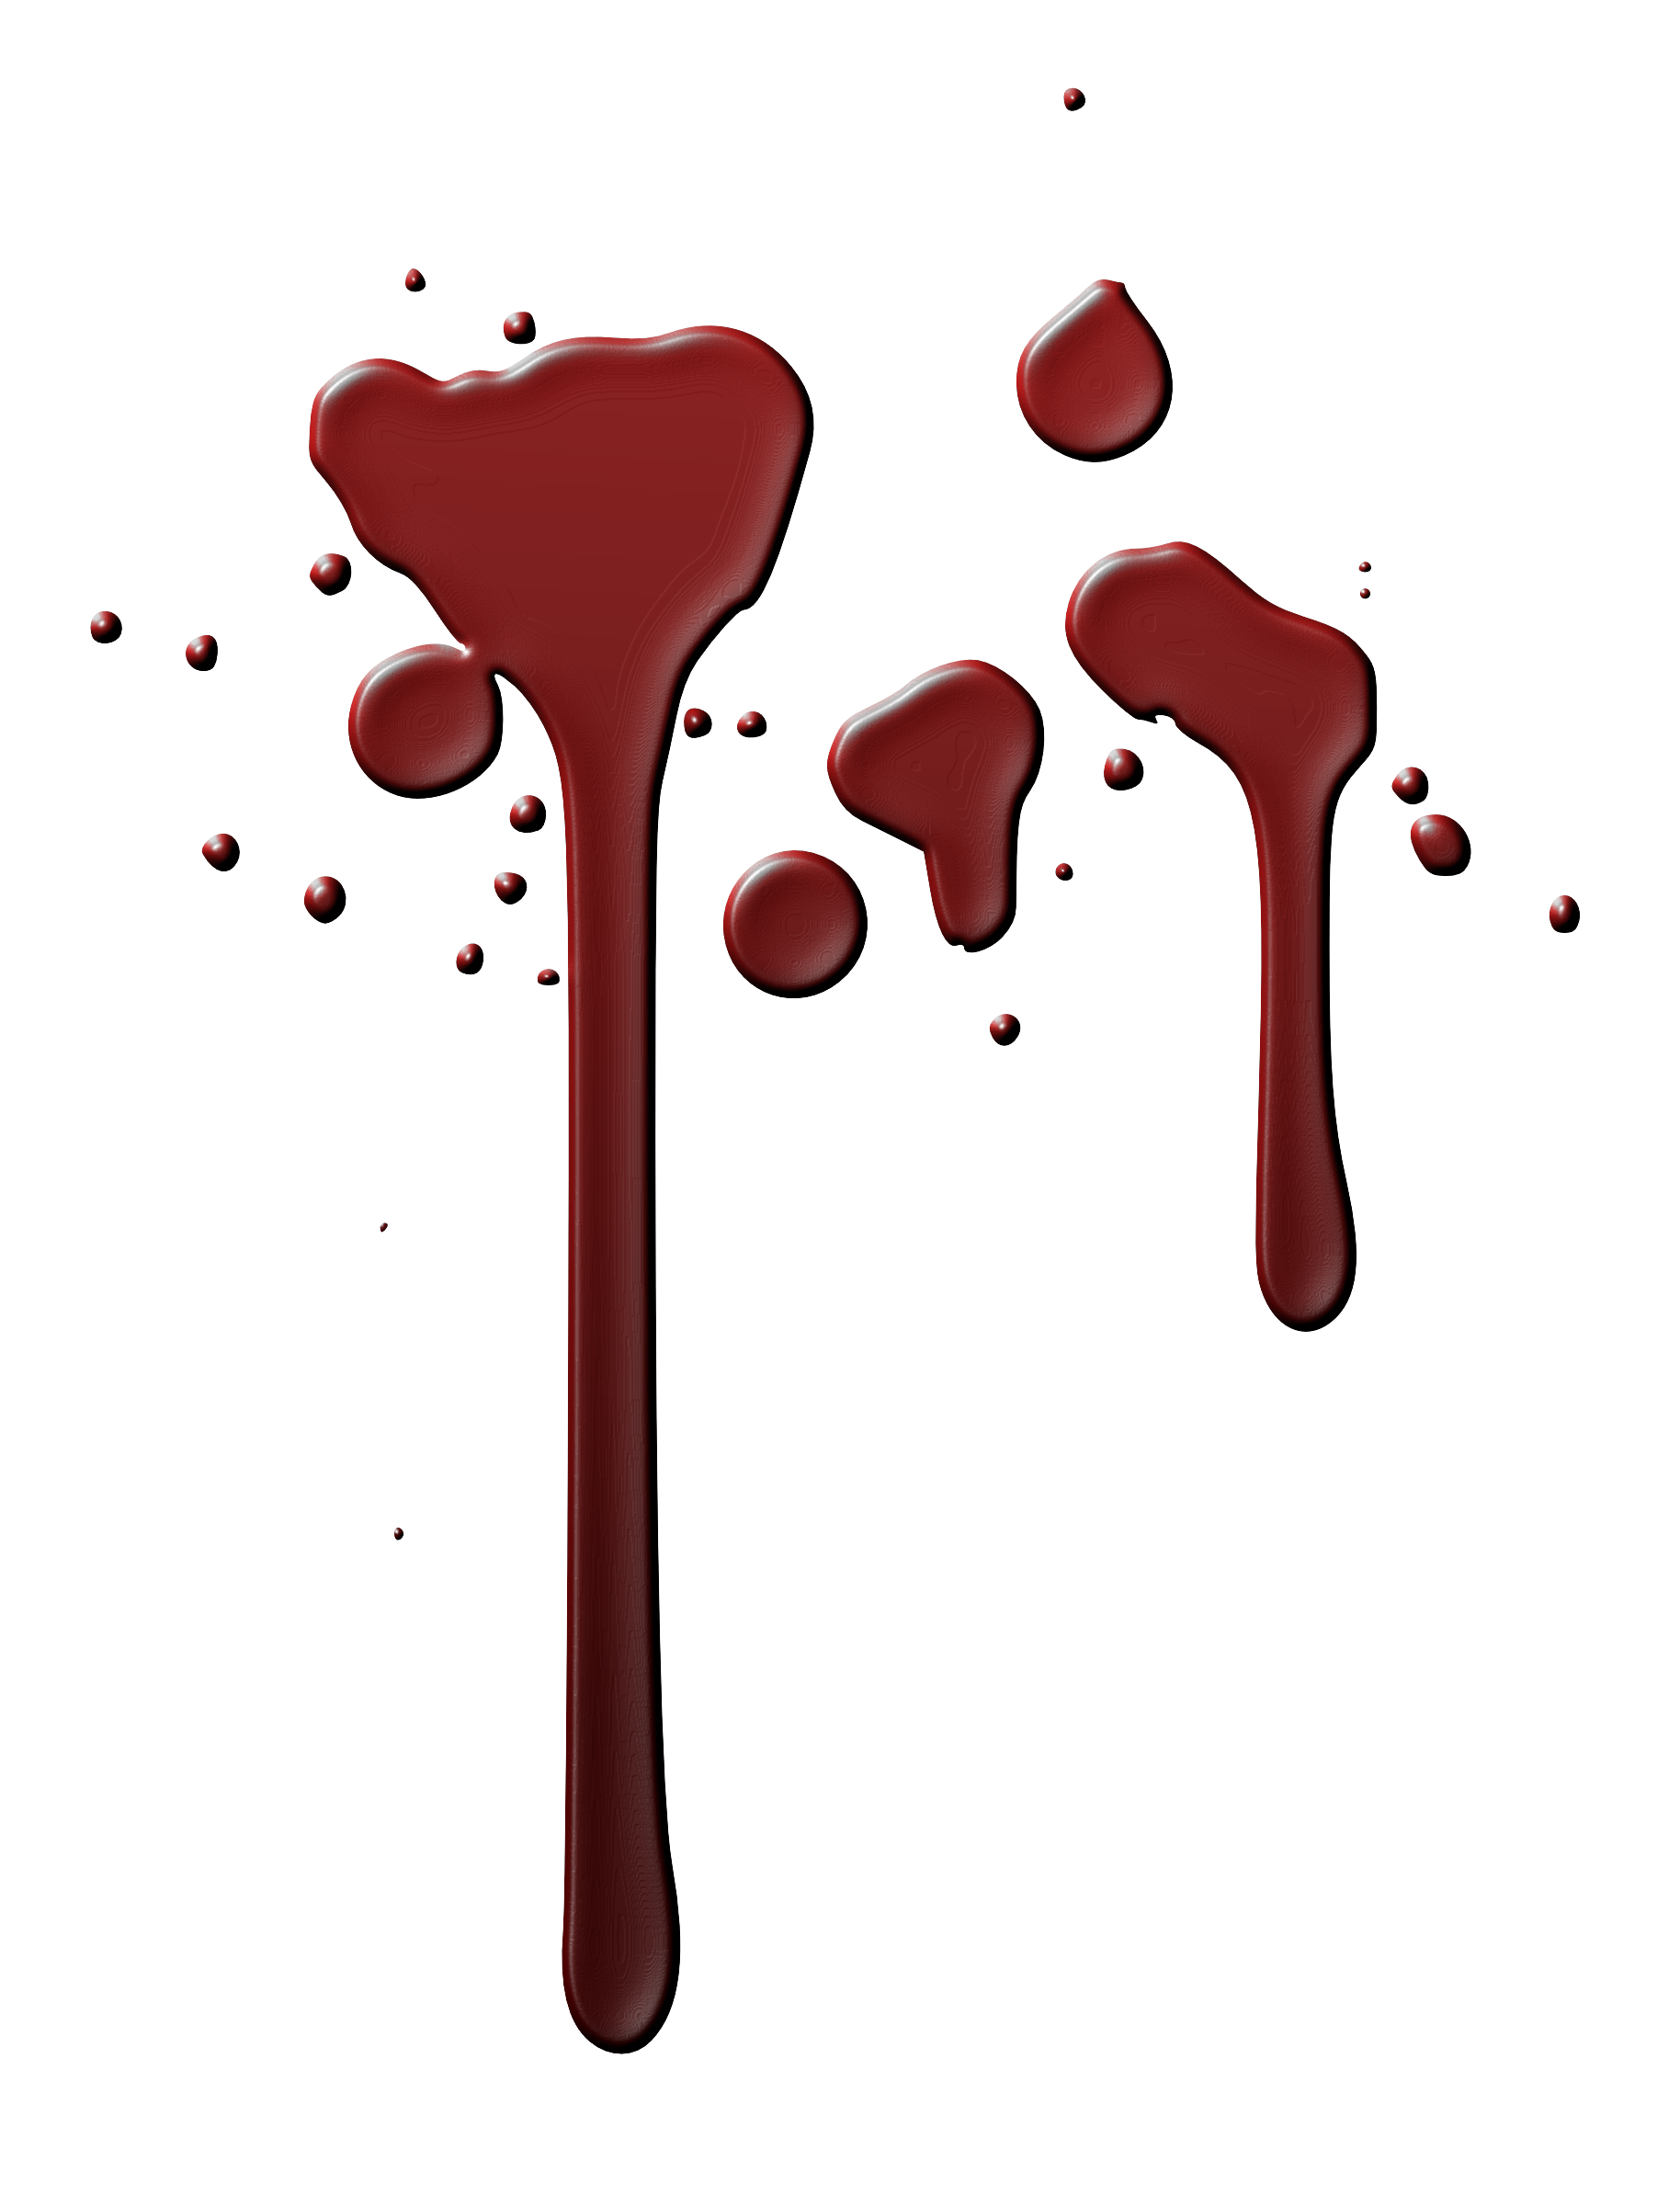 Blood drops png. Hd free icons and